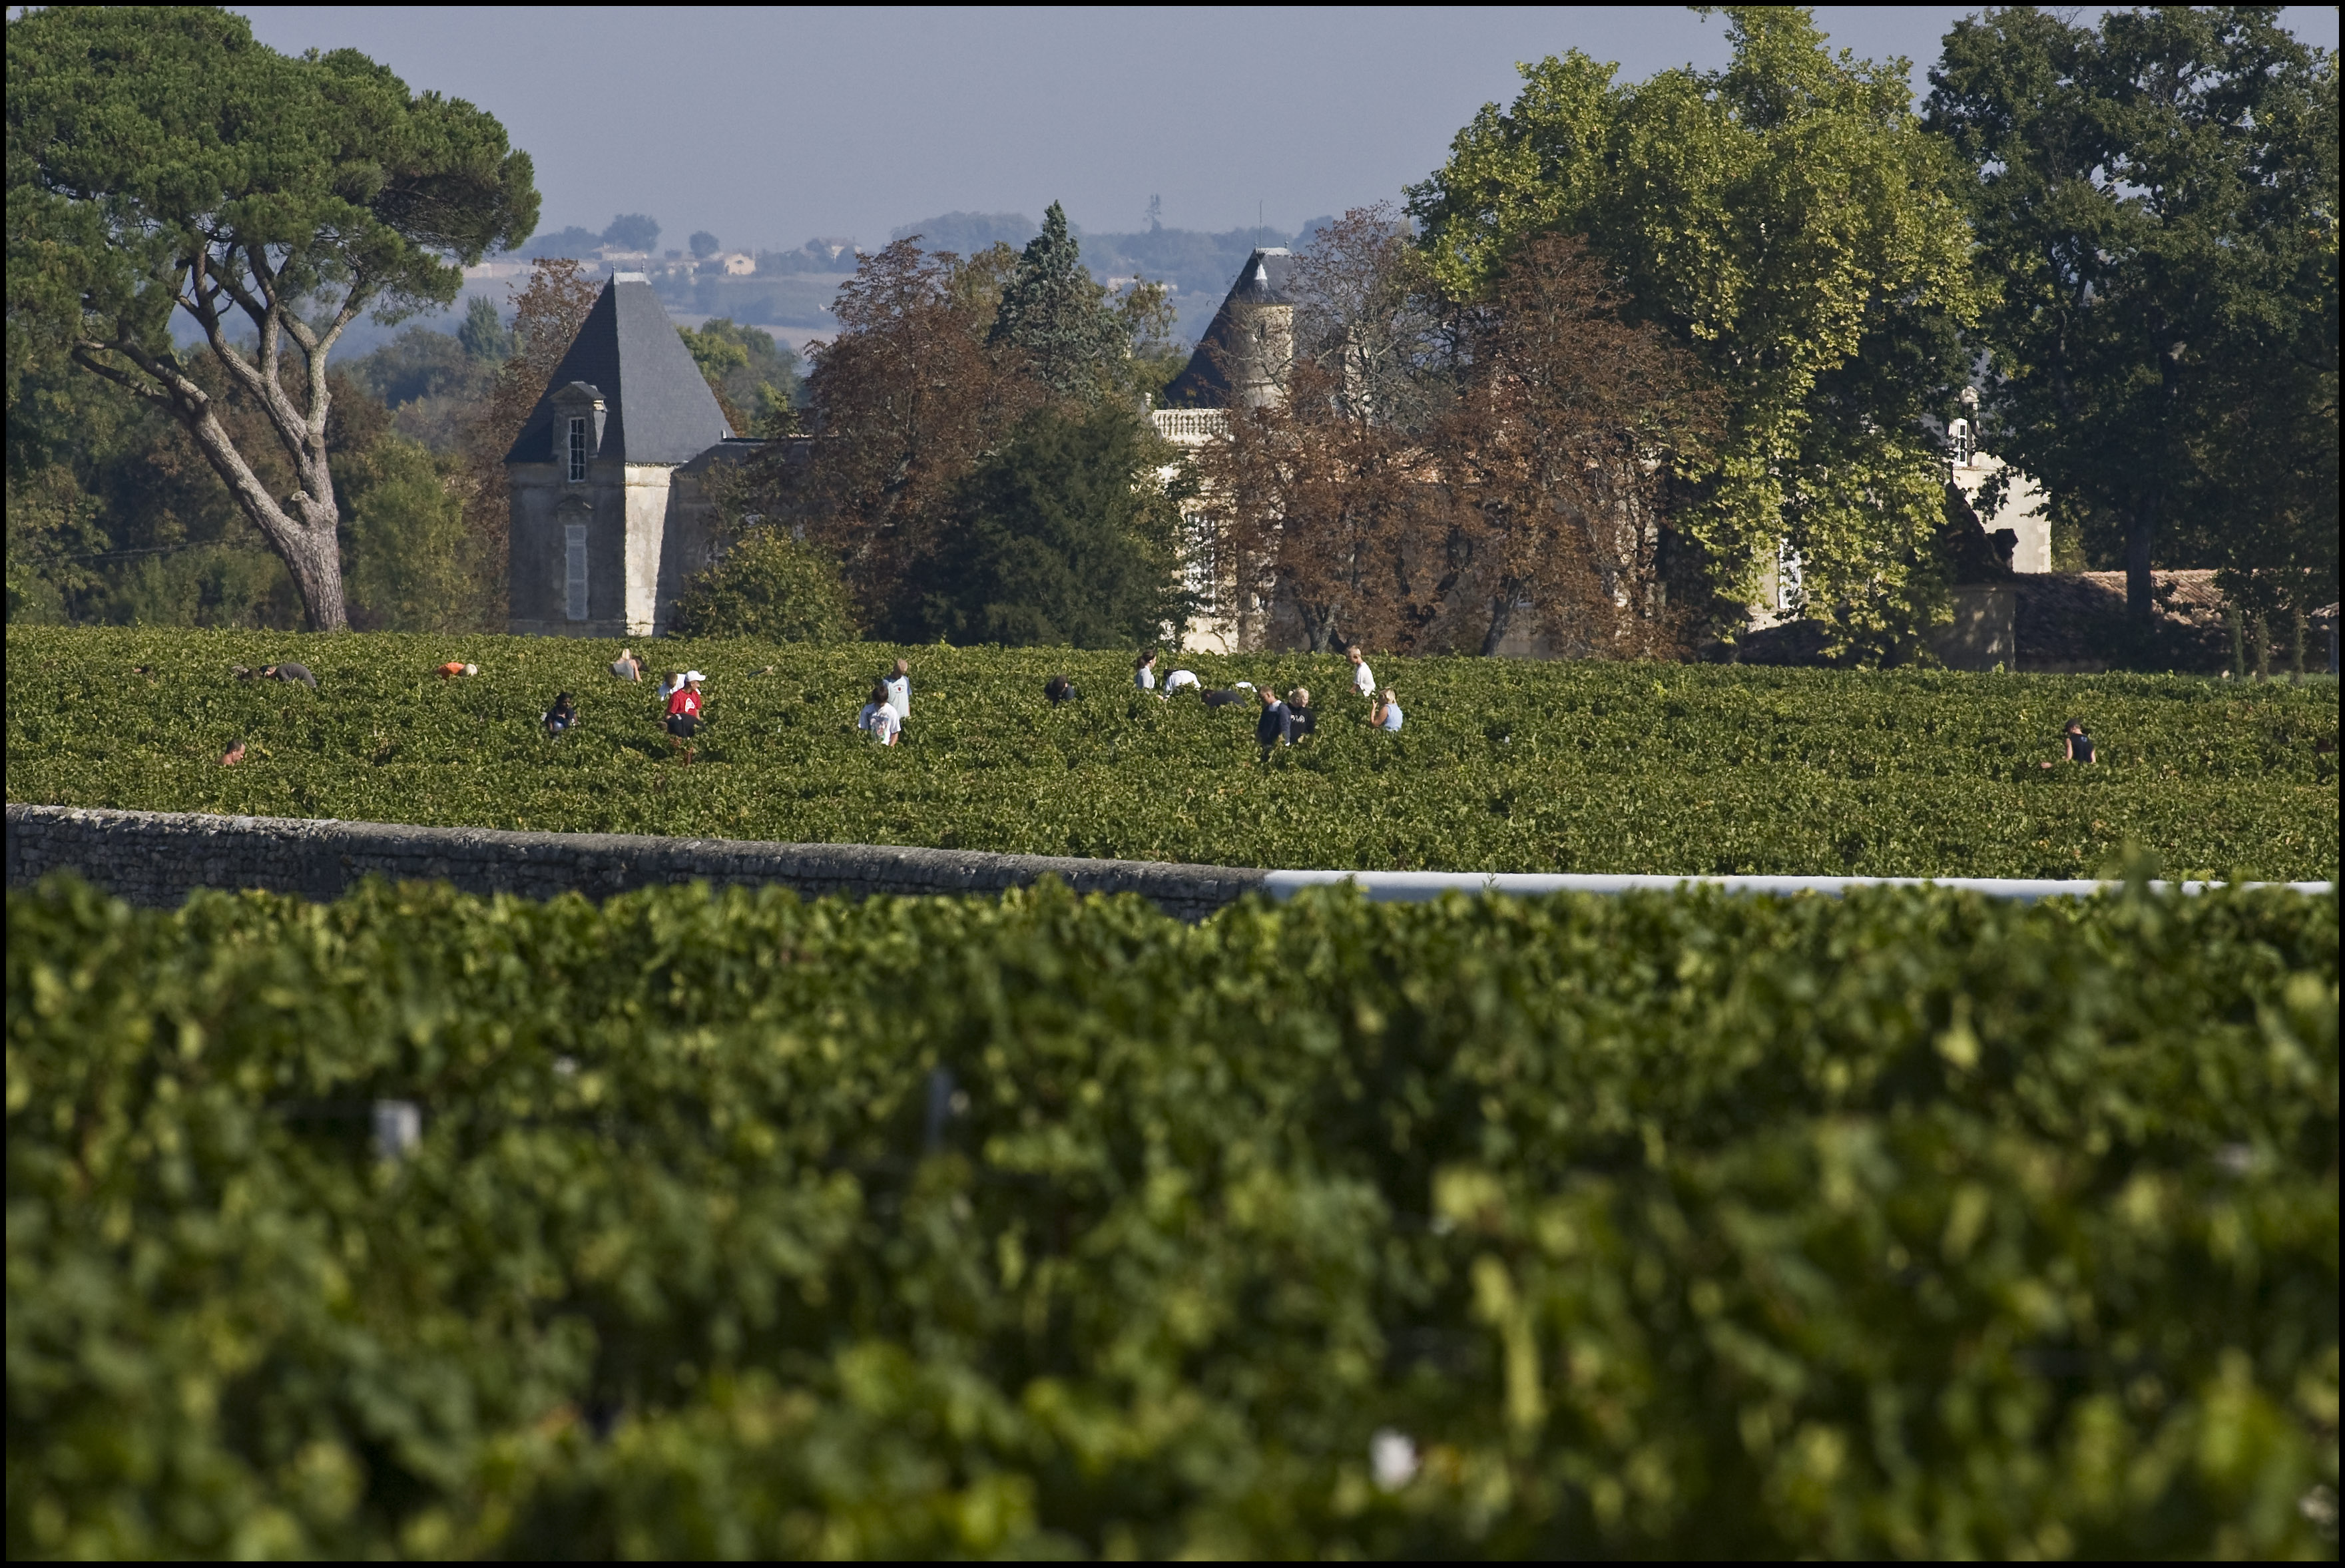 2010 Chateau d'Issan Harvest, Warm Days, Cool Nights in Margaux